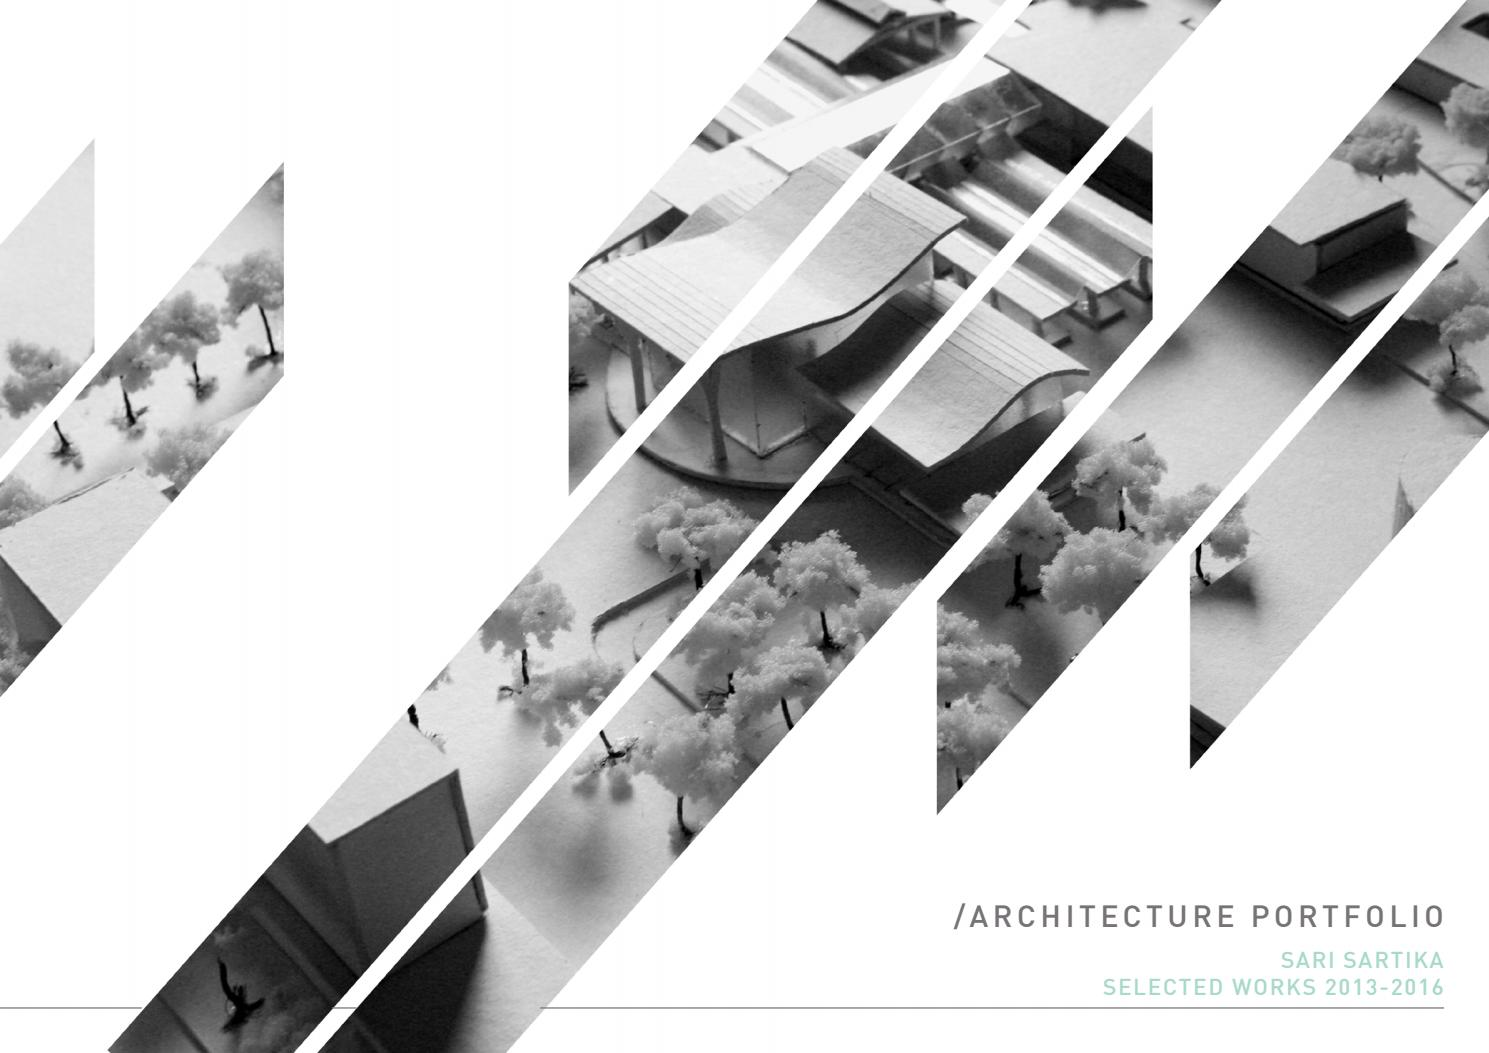 Architecture portfolio 2013 2016 by sari sartika issuu for Innenarchitektur portfolio